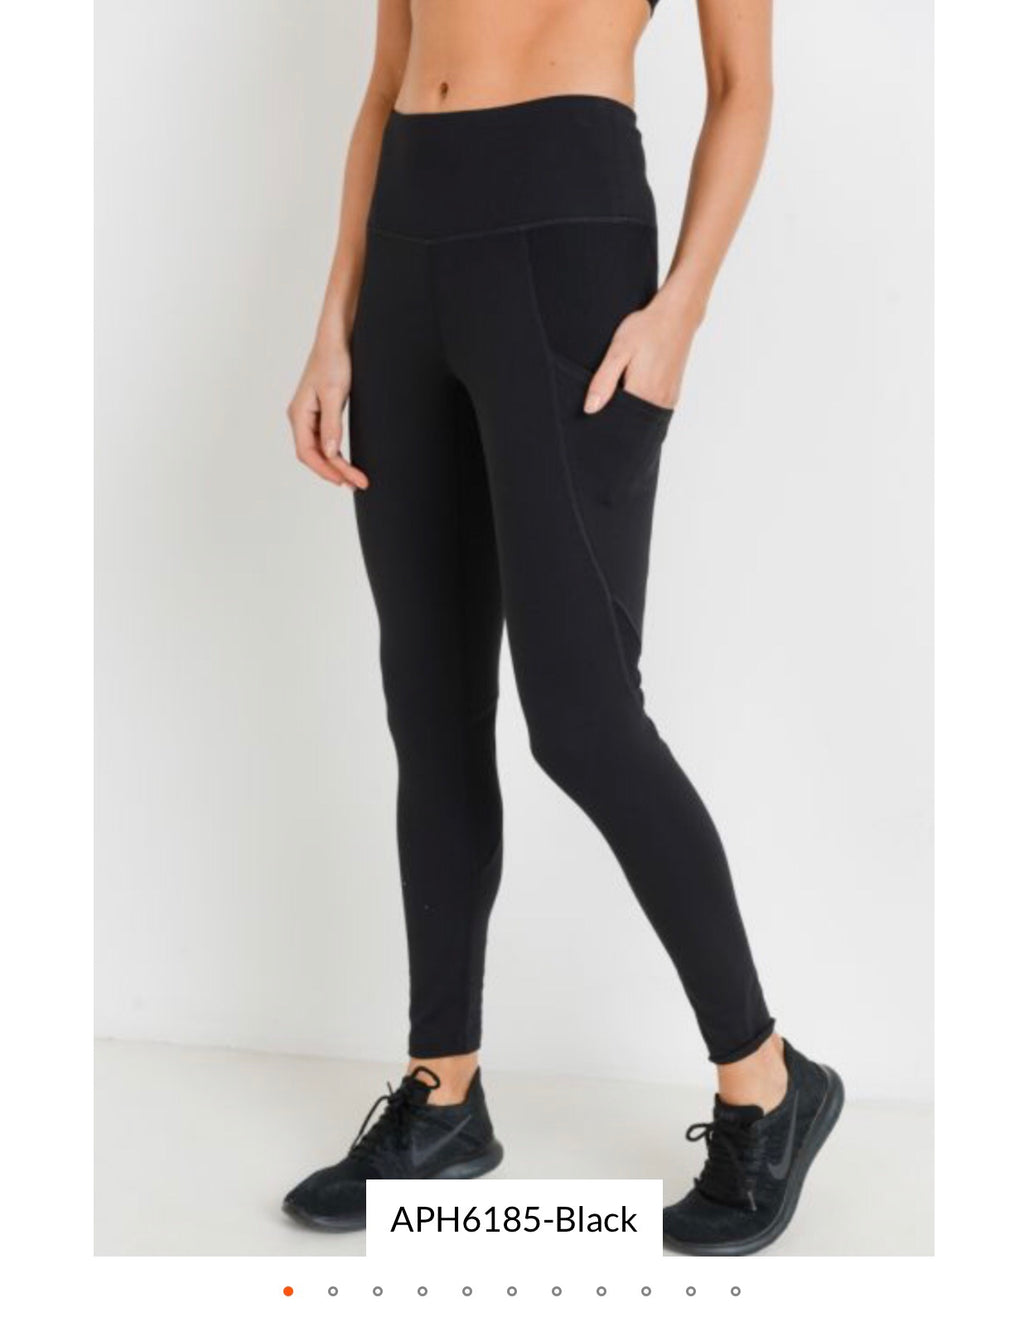 Ribbed and Smooth high waist legging *Clearance*